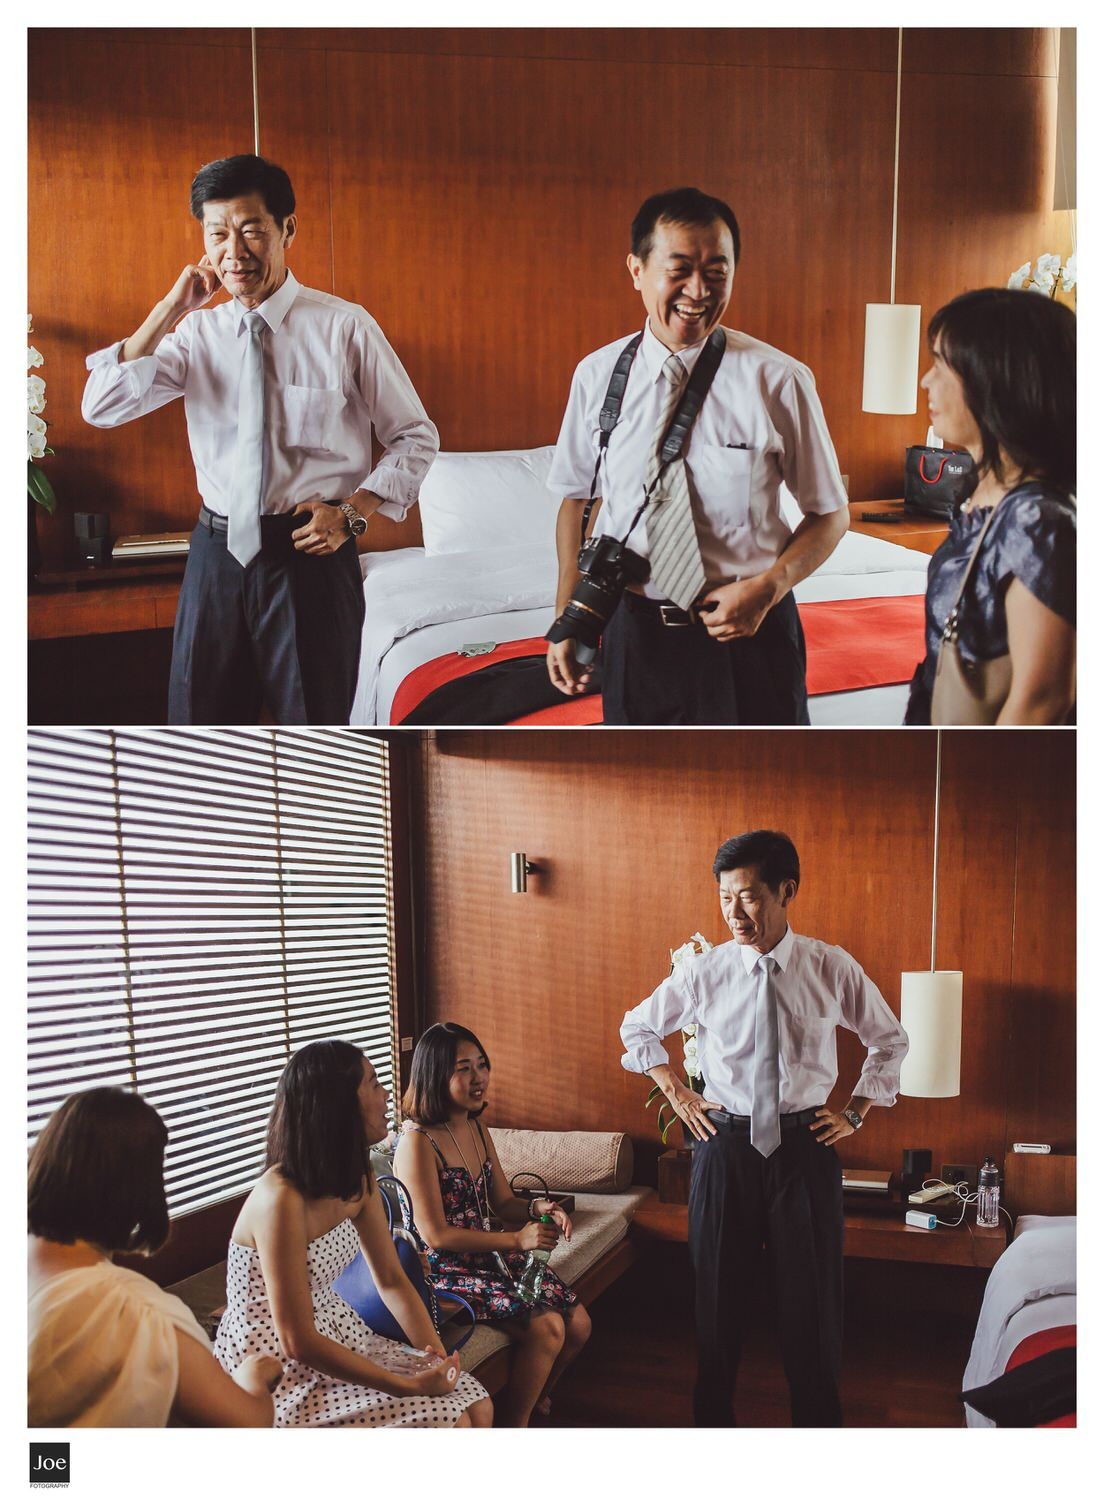 joe-fotography-the-lalu-sun-moon-lake-wedding-kay-geoffrey-088.jpg